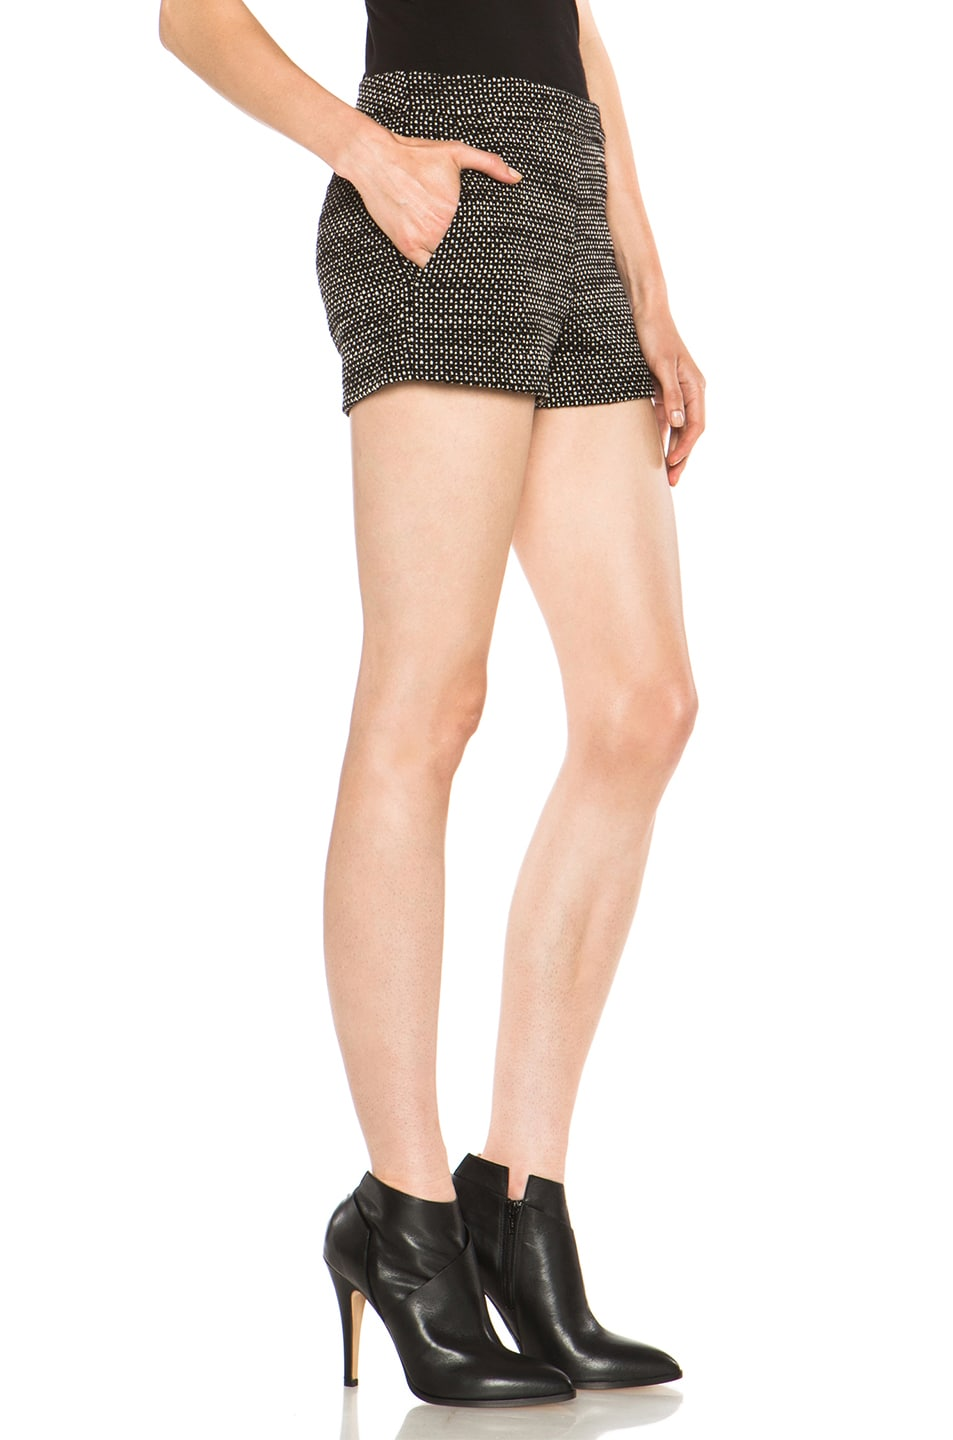 Image 3 of Derek Lam Graphic Tweed Wool Shorts in Black & White